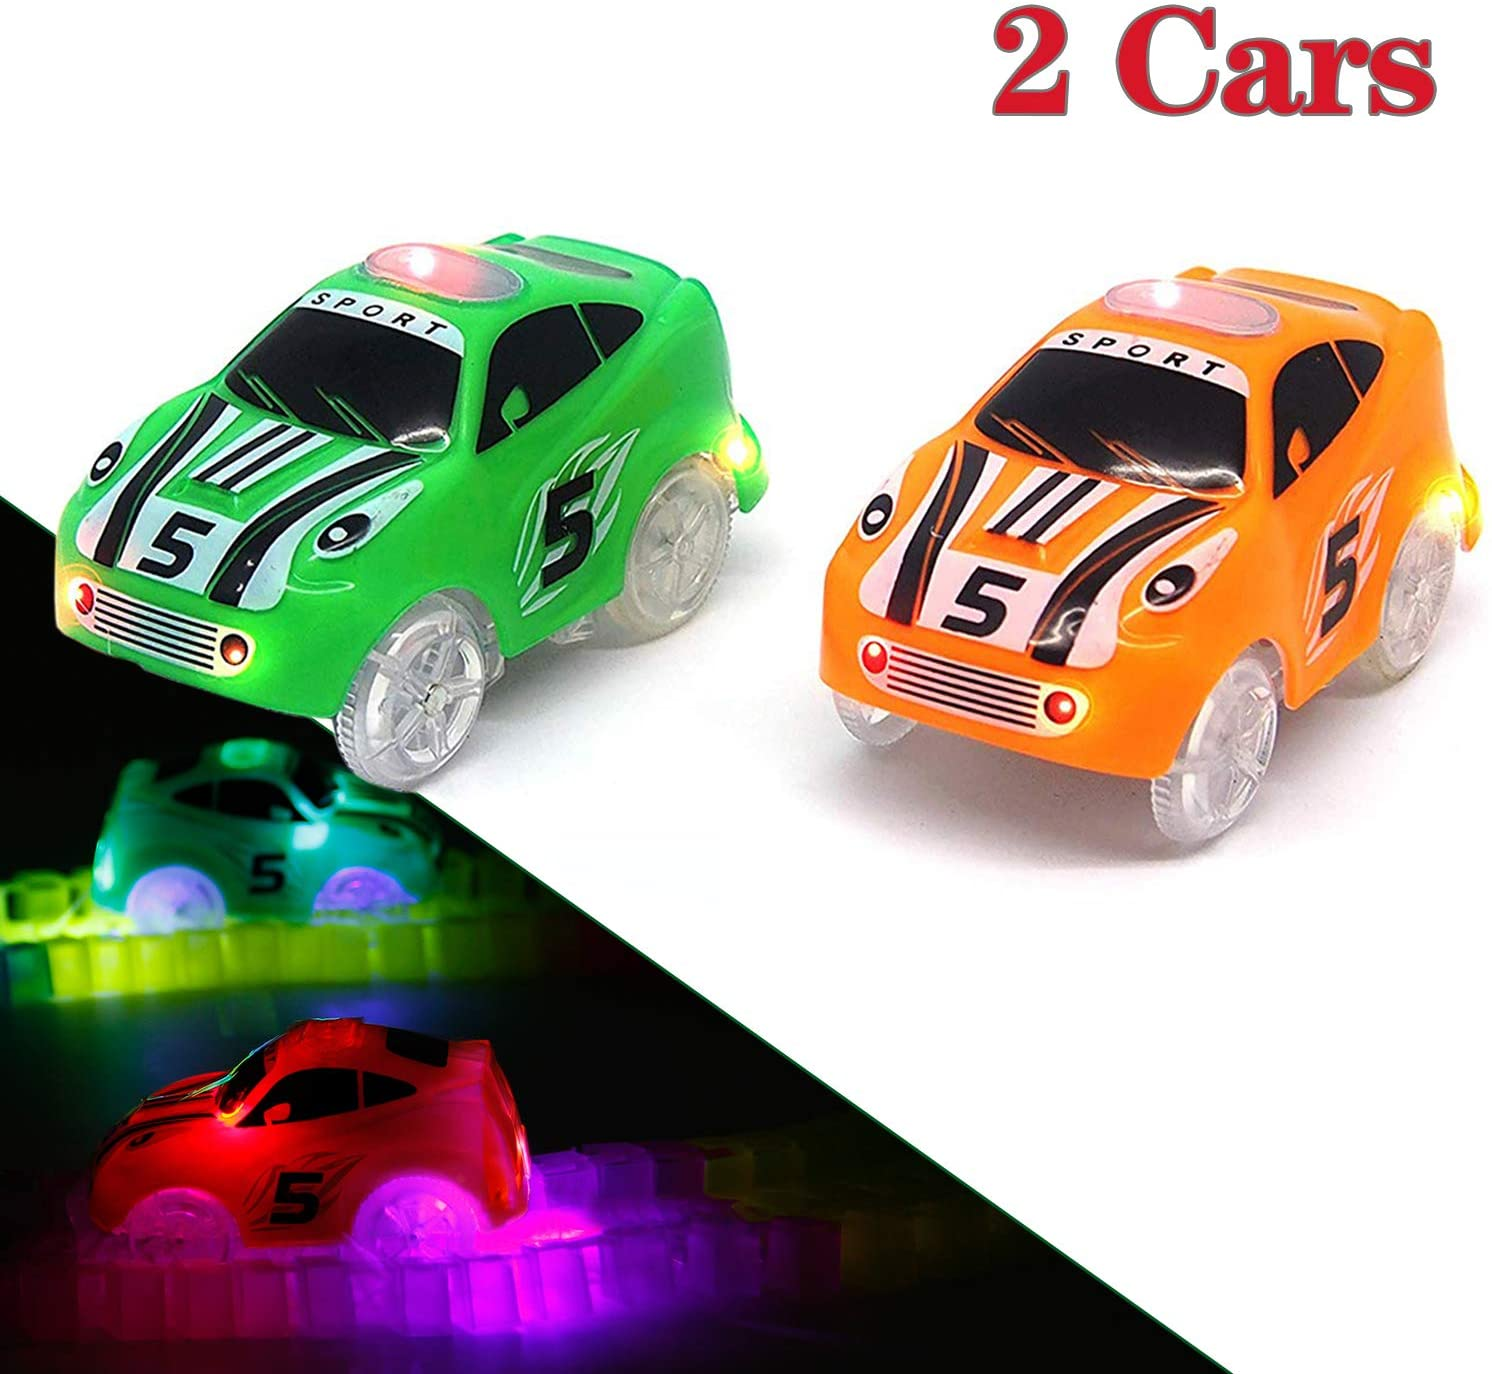 Mini Tudou Track Cars Toy 2 Pack,Replacement Only Light Up Toy Cars Compatible with Magic Tracks&Neo Tracks with 3 LED Lights Magic Glow in Dark,Best Toy Cars for Ages 3 4 5 Boys and Girls